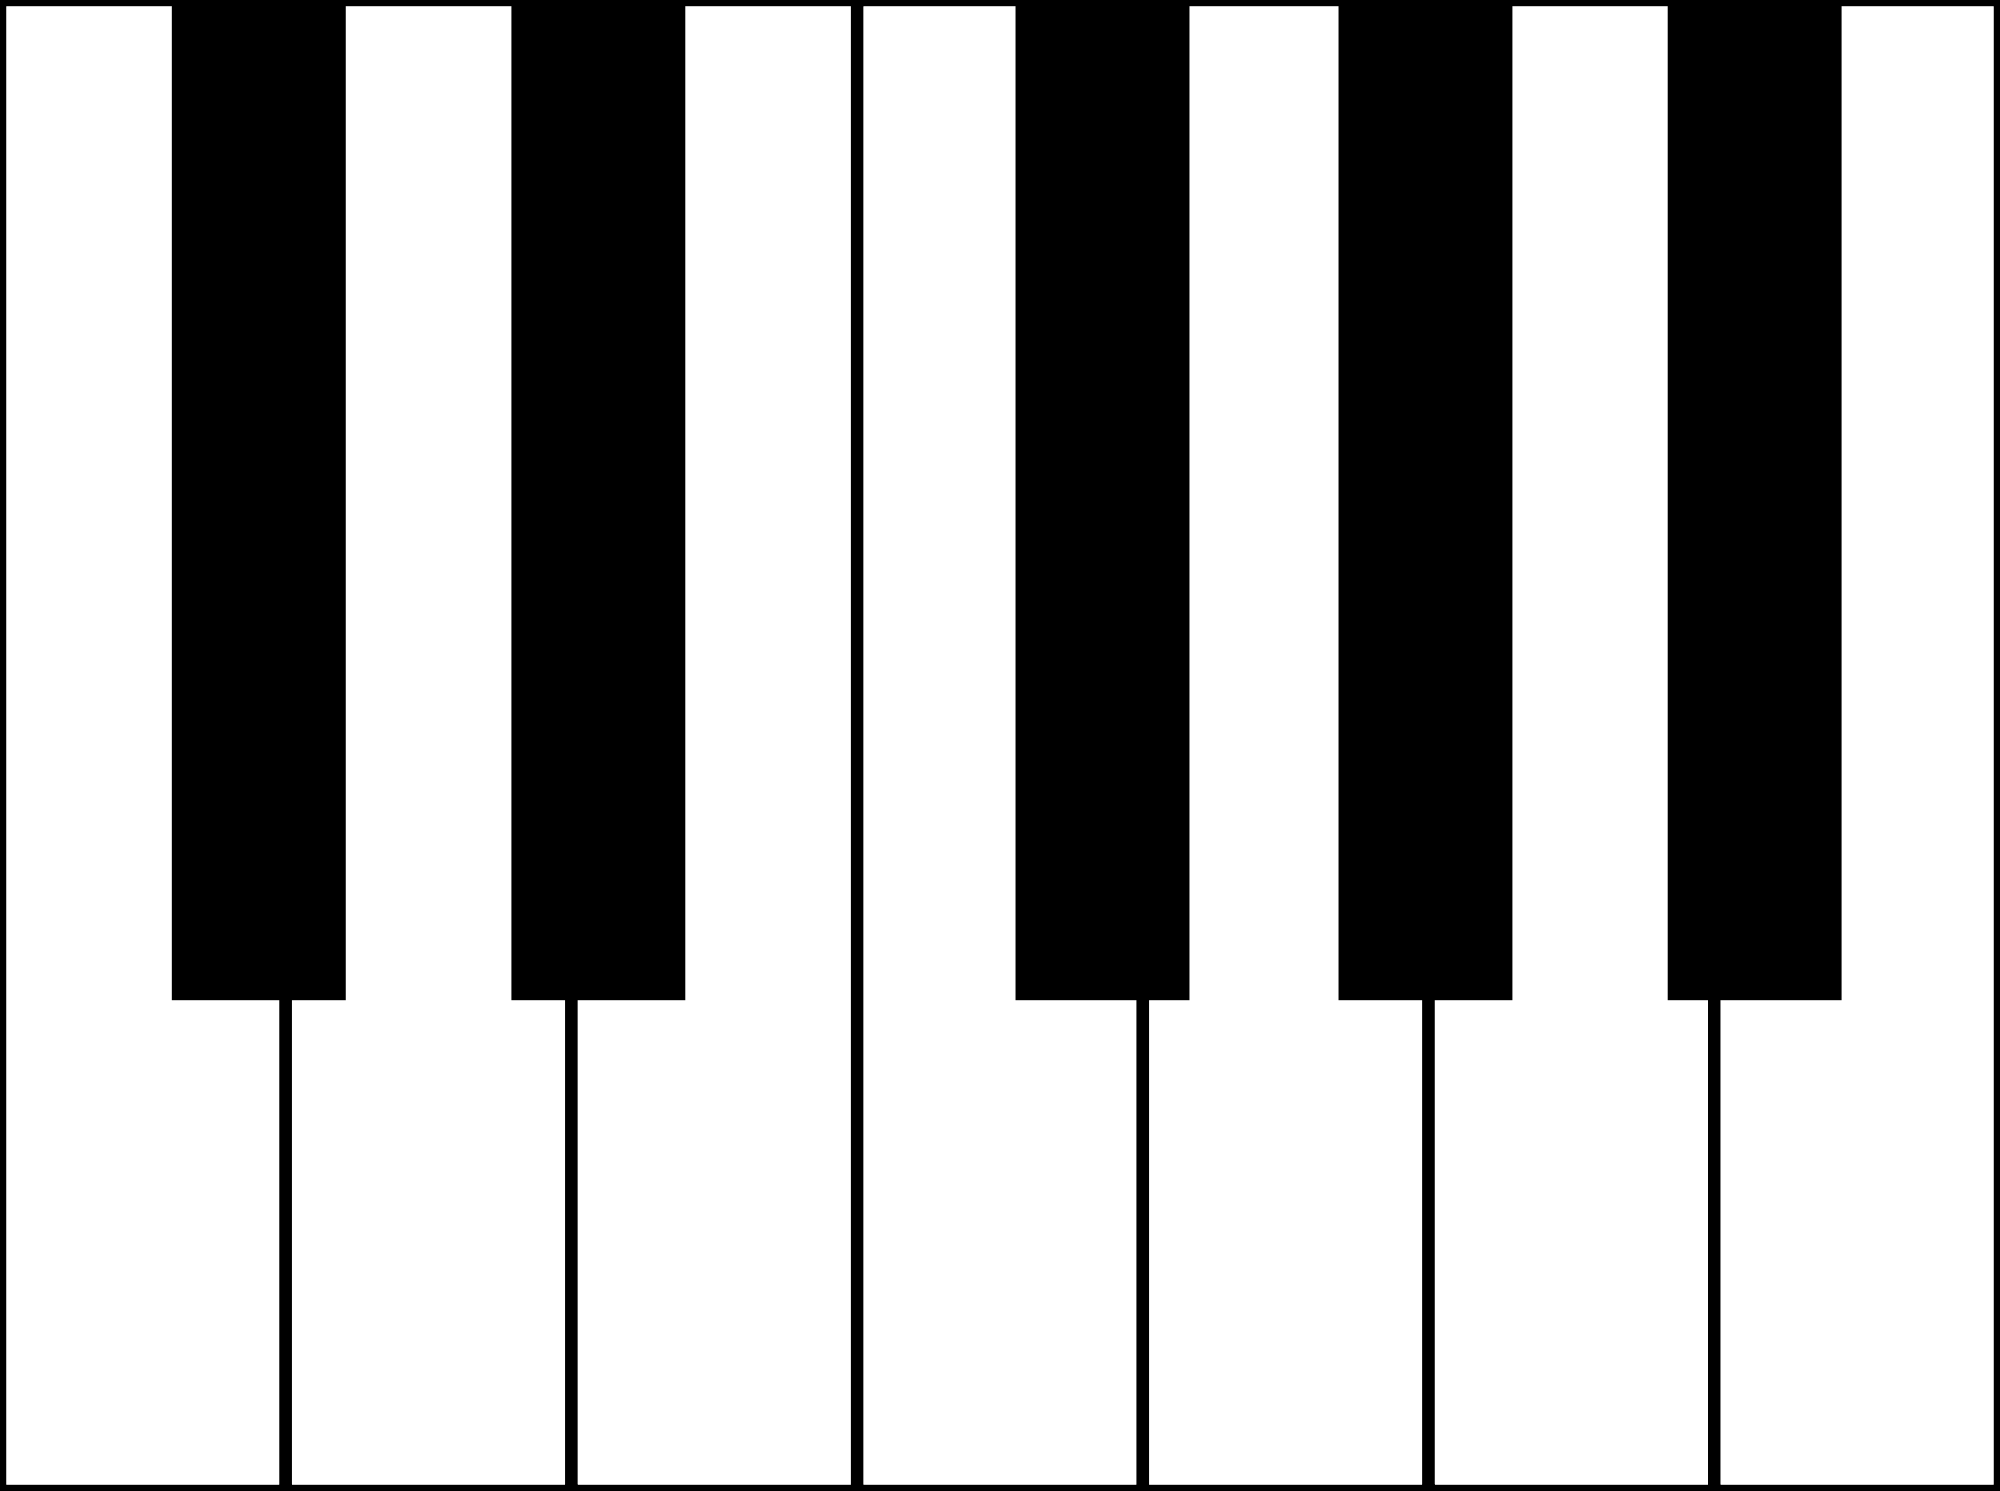 Musical instrument keyboard clipart black and white vector royalty free library Free Piano Keyboard, Download Free Clip Art, Free Clip Art on ... vector royalty free library